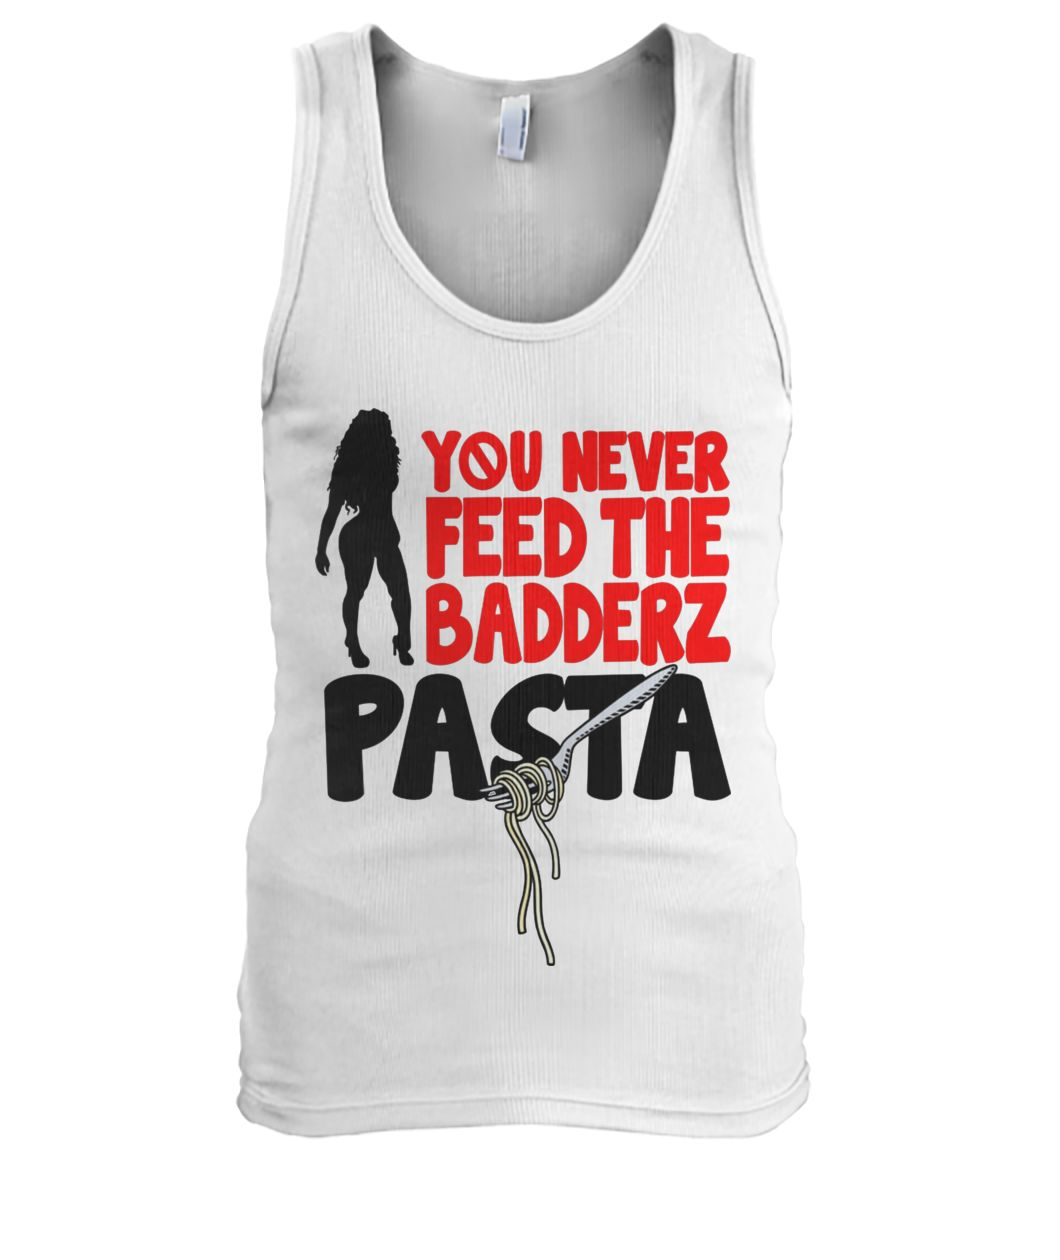 You never feed the badderz pasta men's tank top